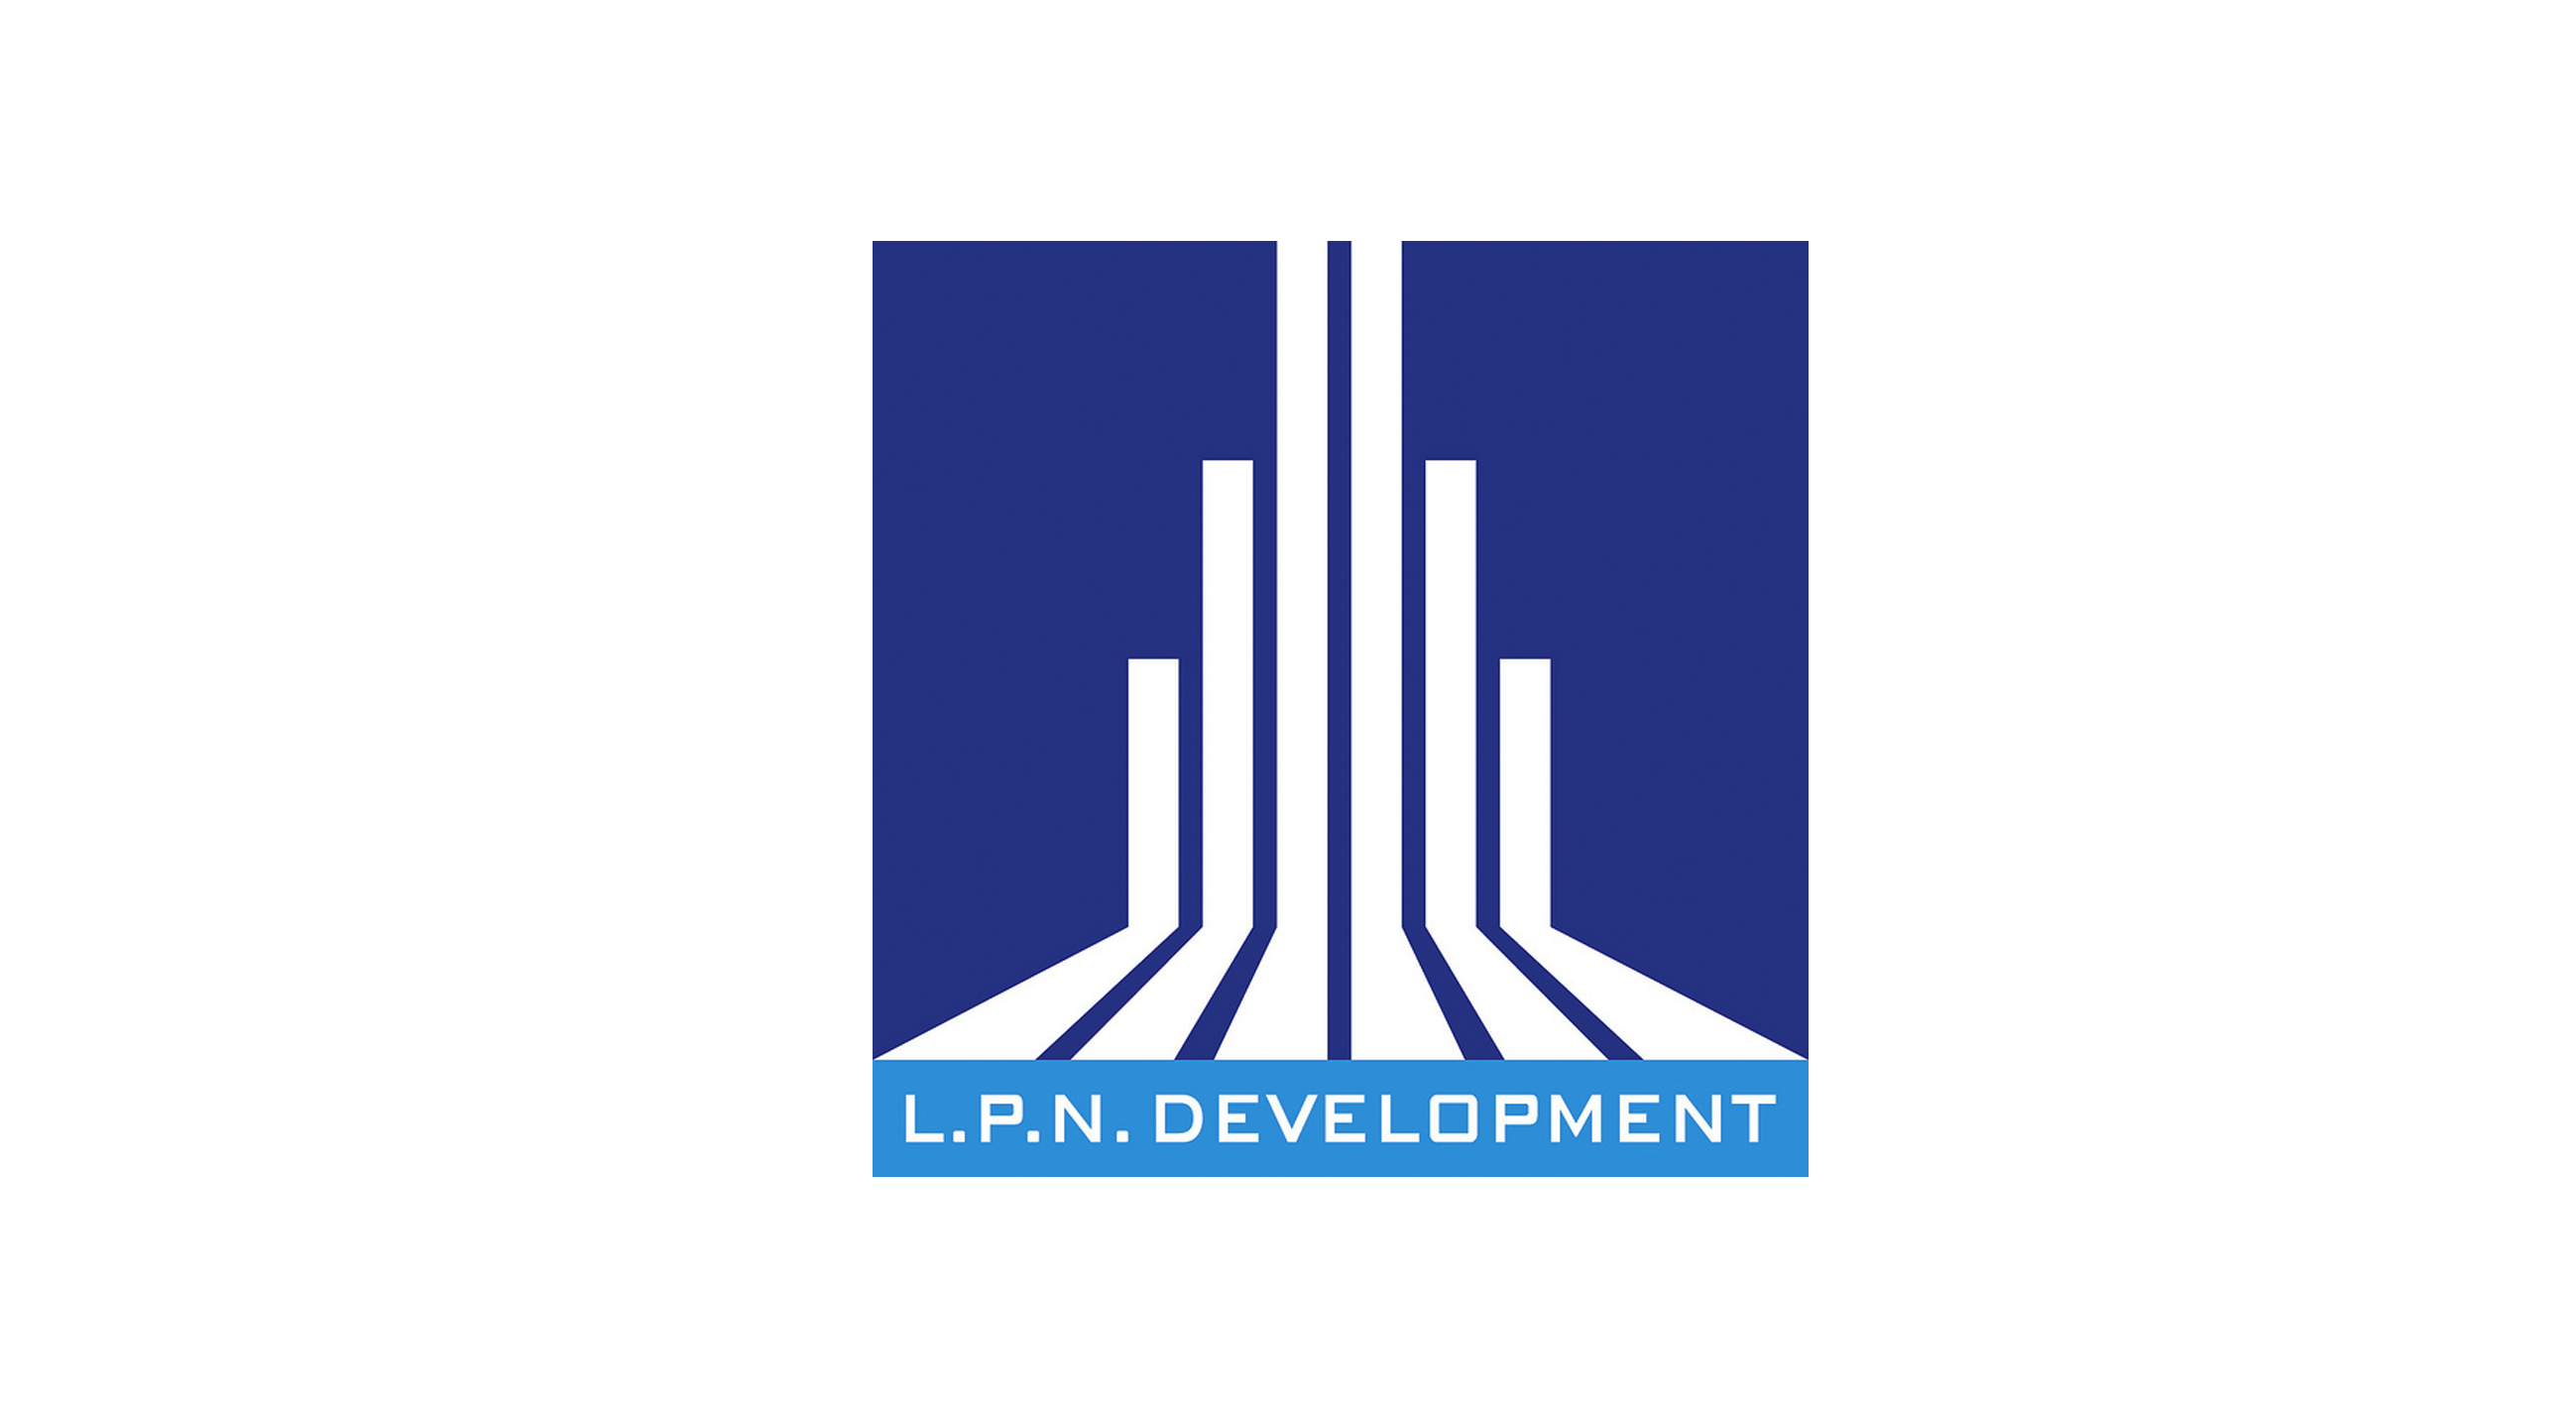 L.P.N. DEVELOPMENT Pub Co., Ltd - Lpn PNG